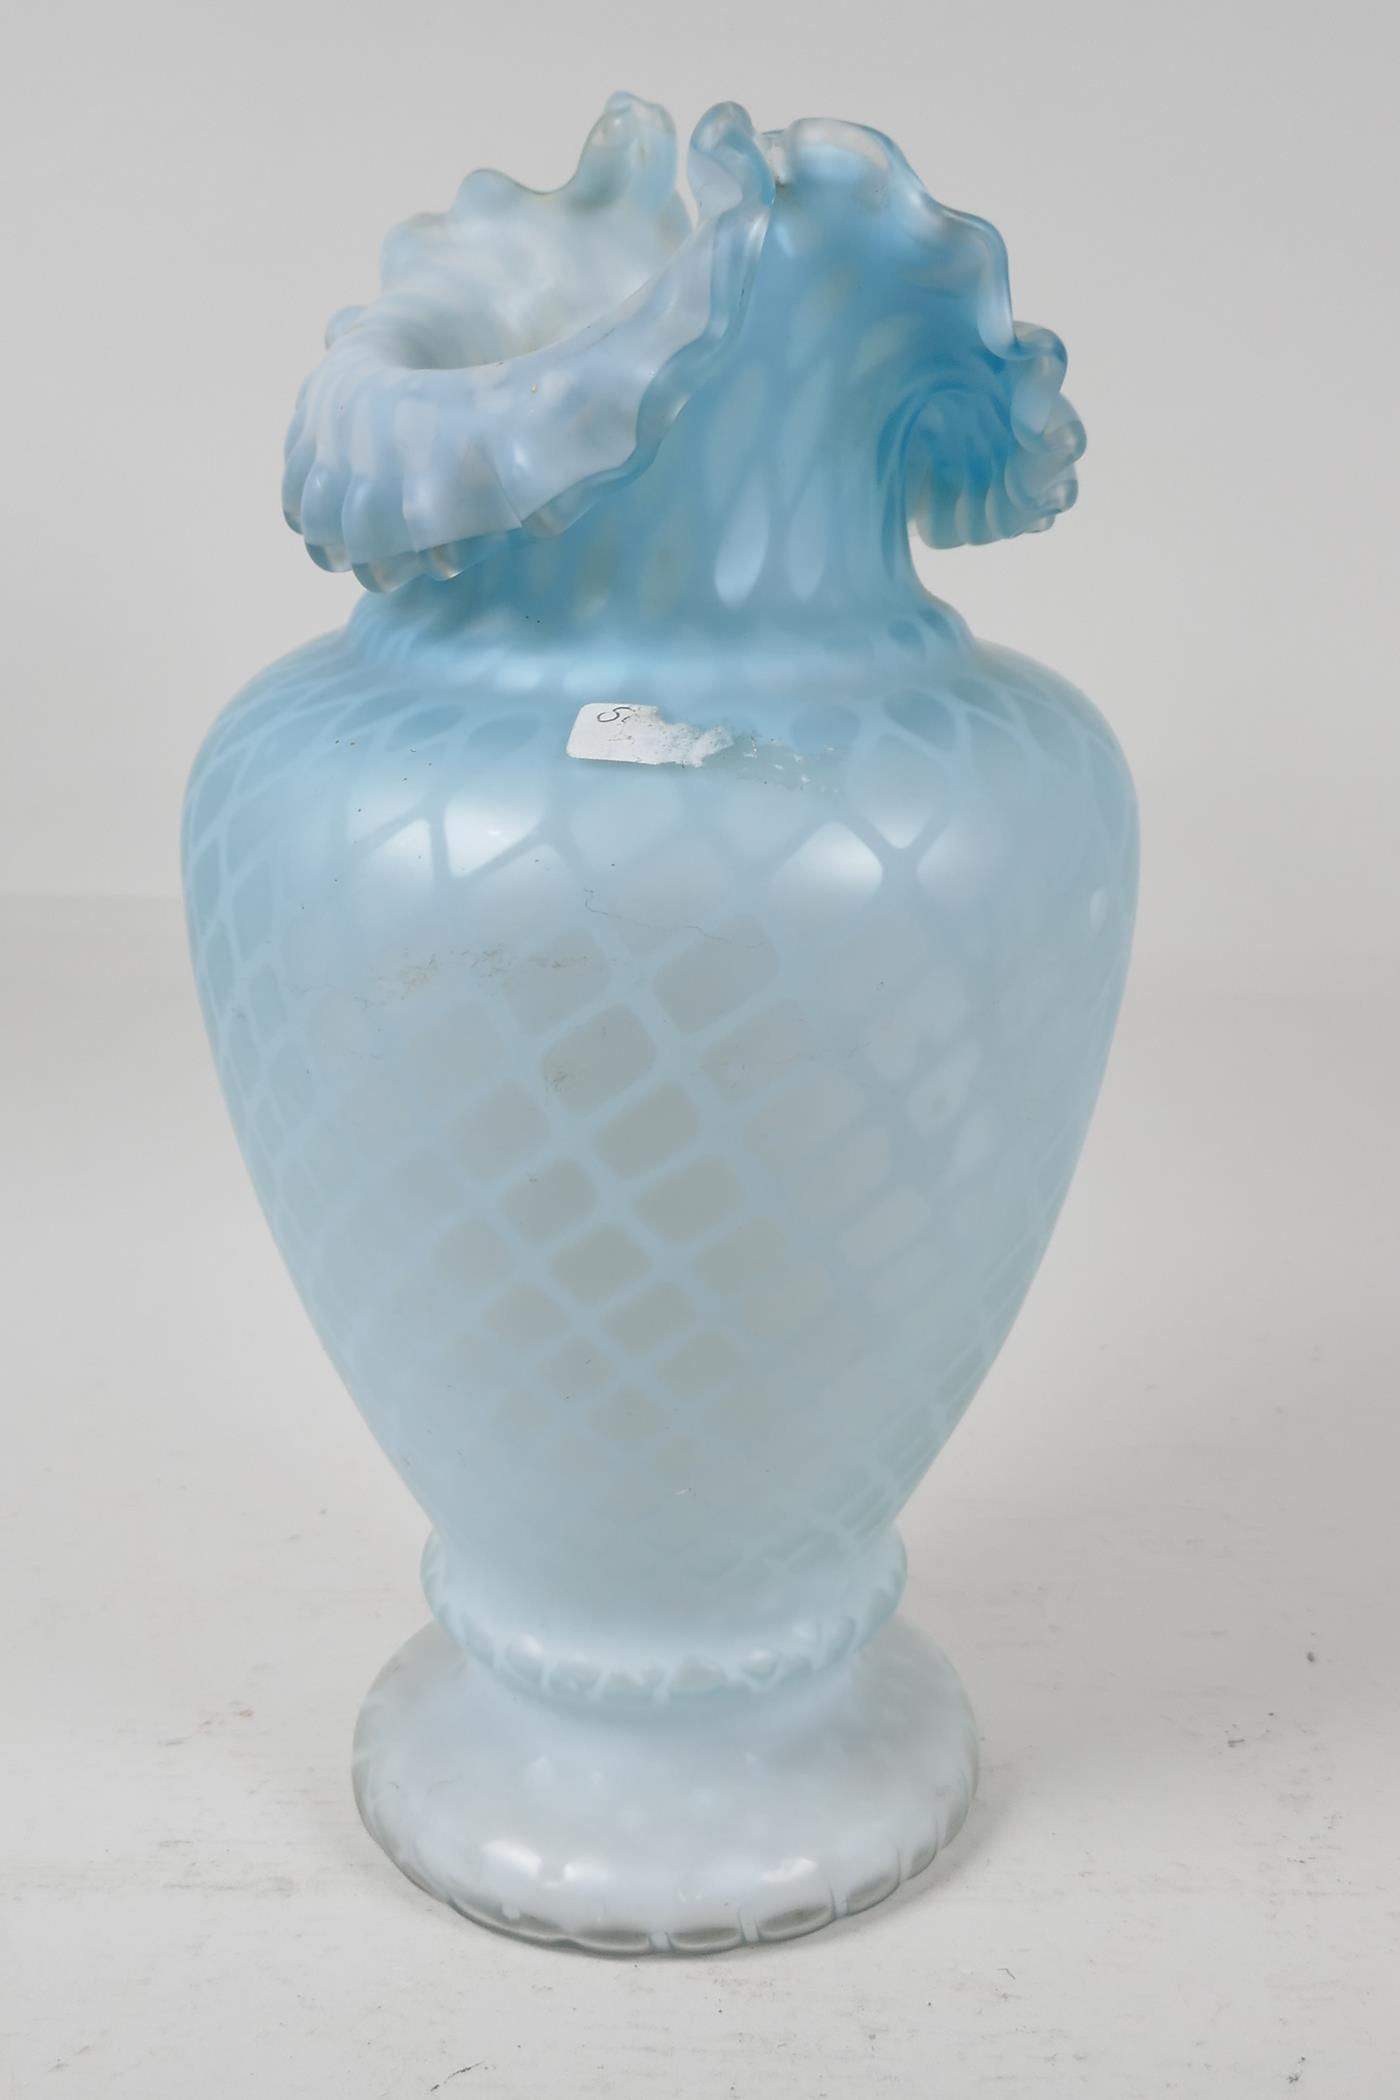 """A satin glass vase with lattice design, 11"""" high - Image 2 of 5"""